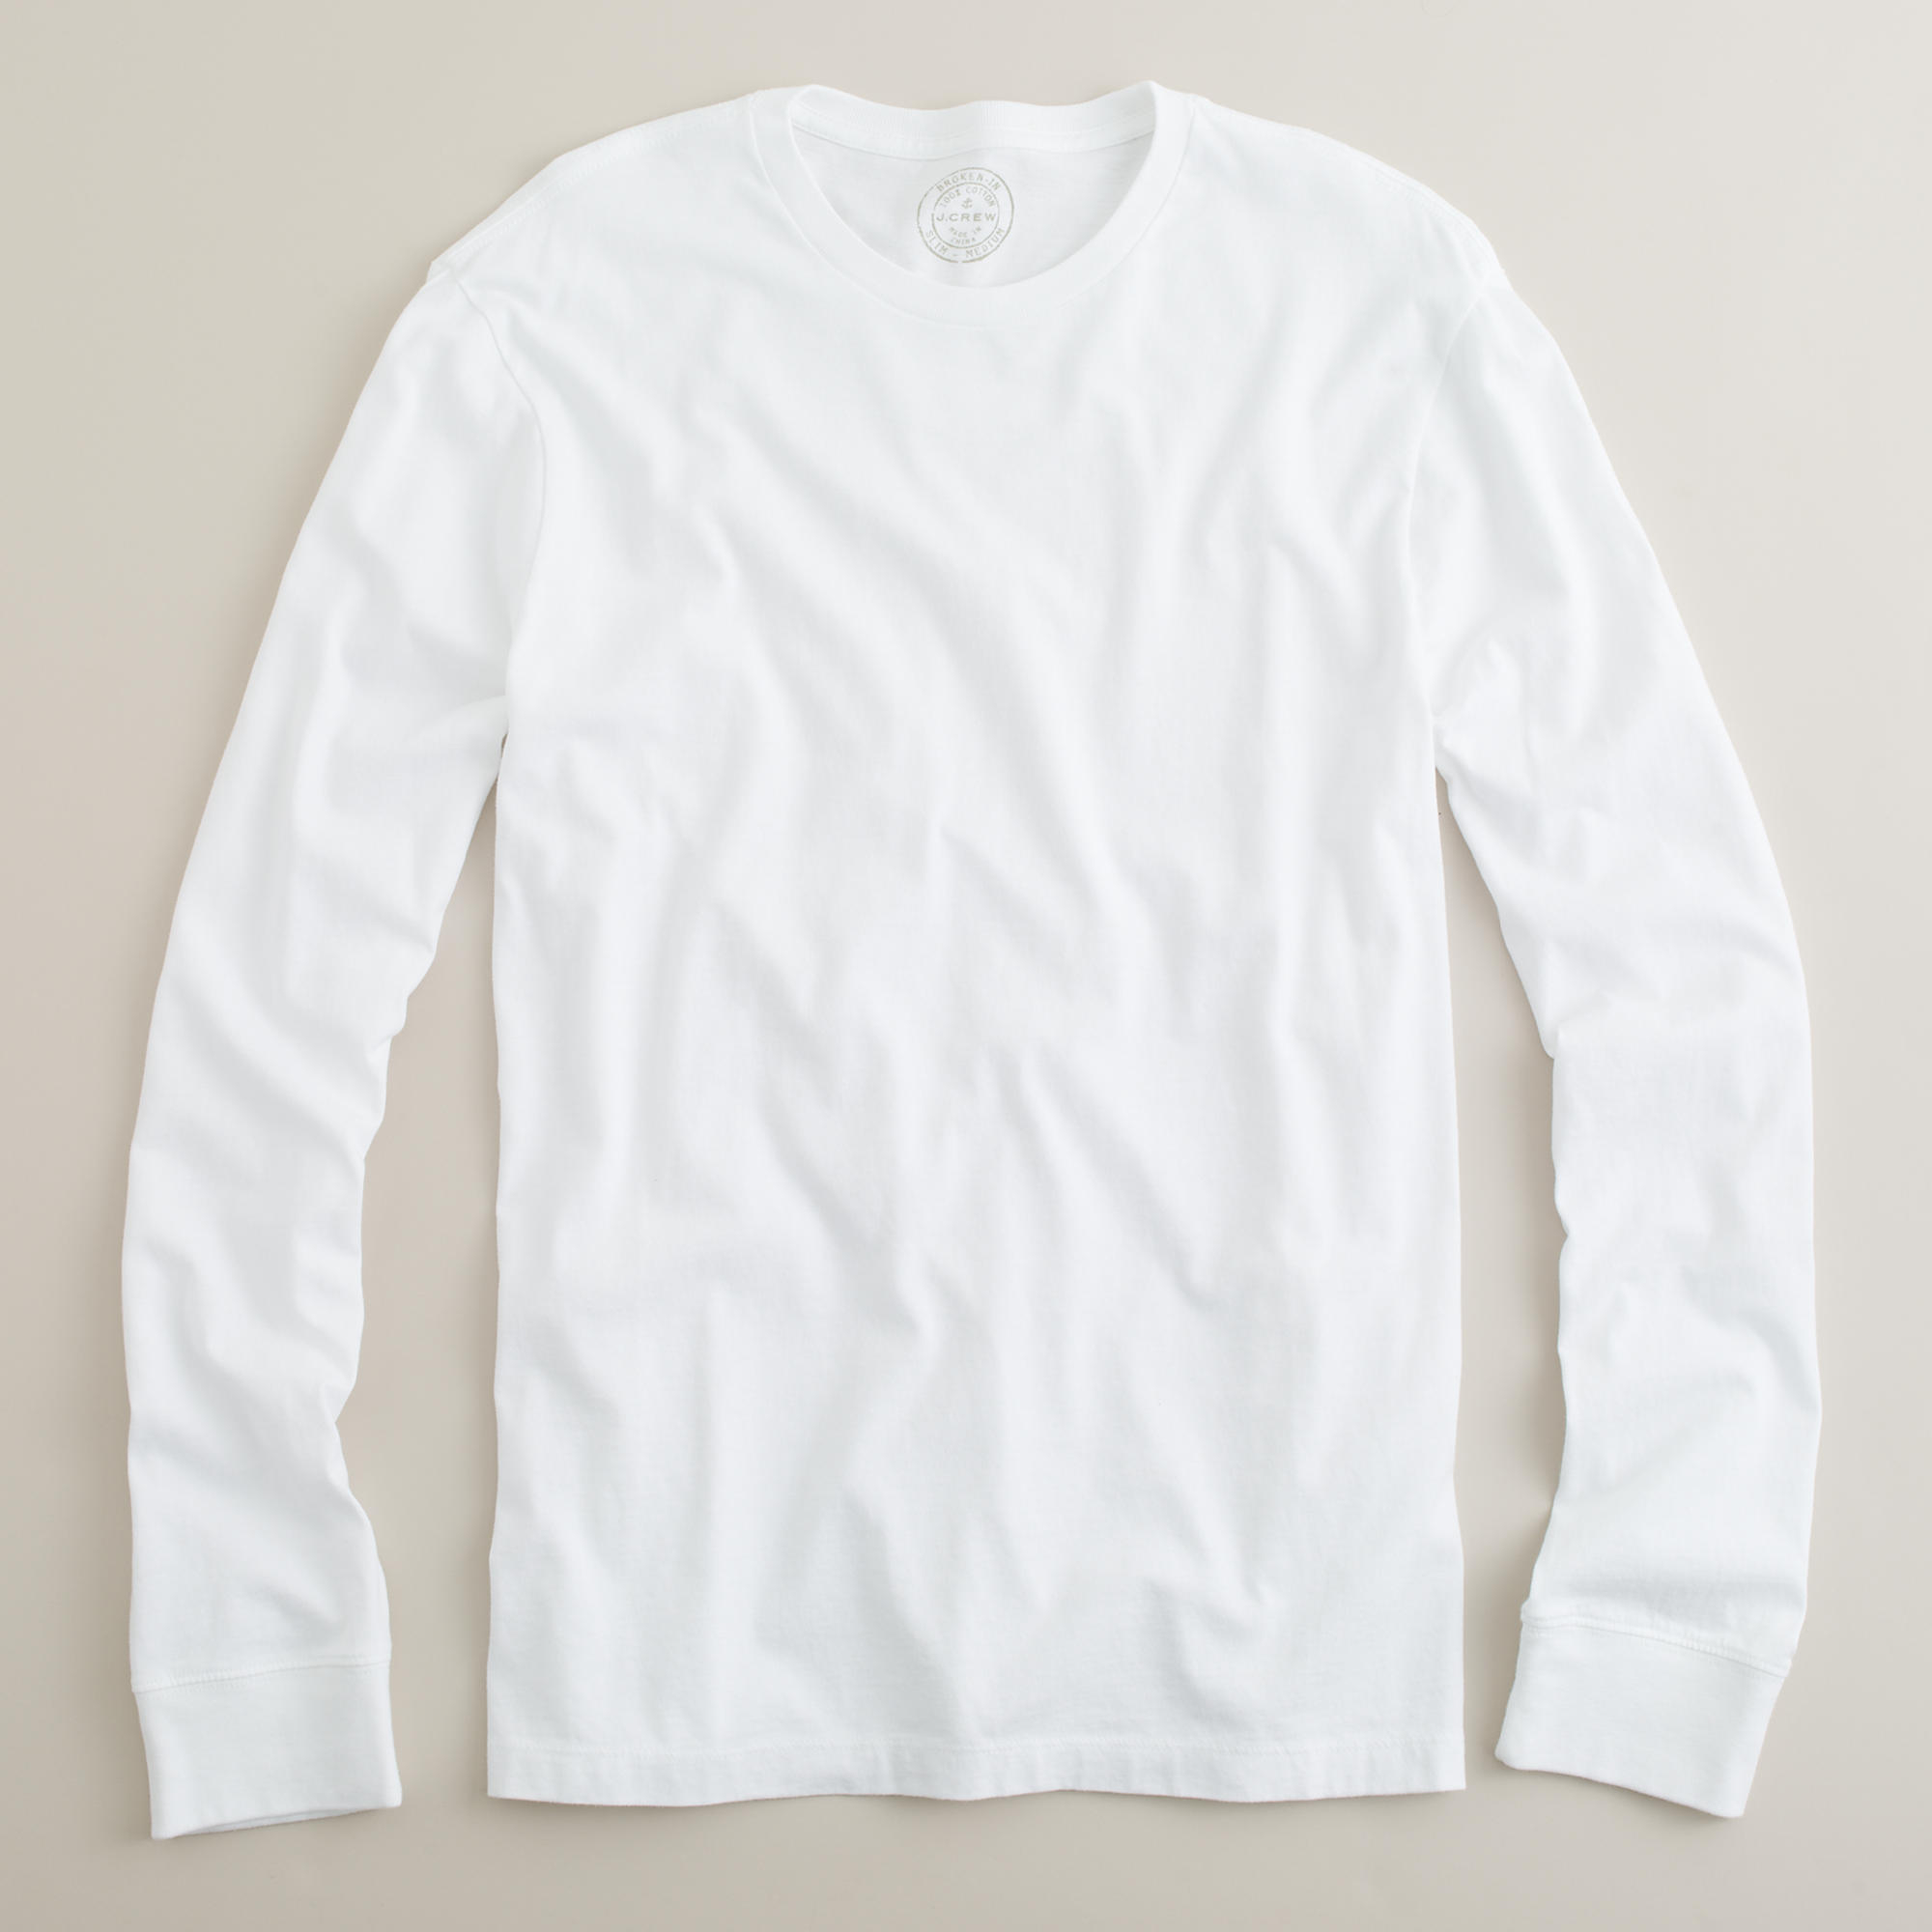 J.crew Slim-Fit Long-Sleeved Cotton T-Shirt in White for ...